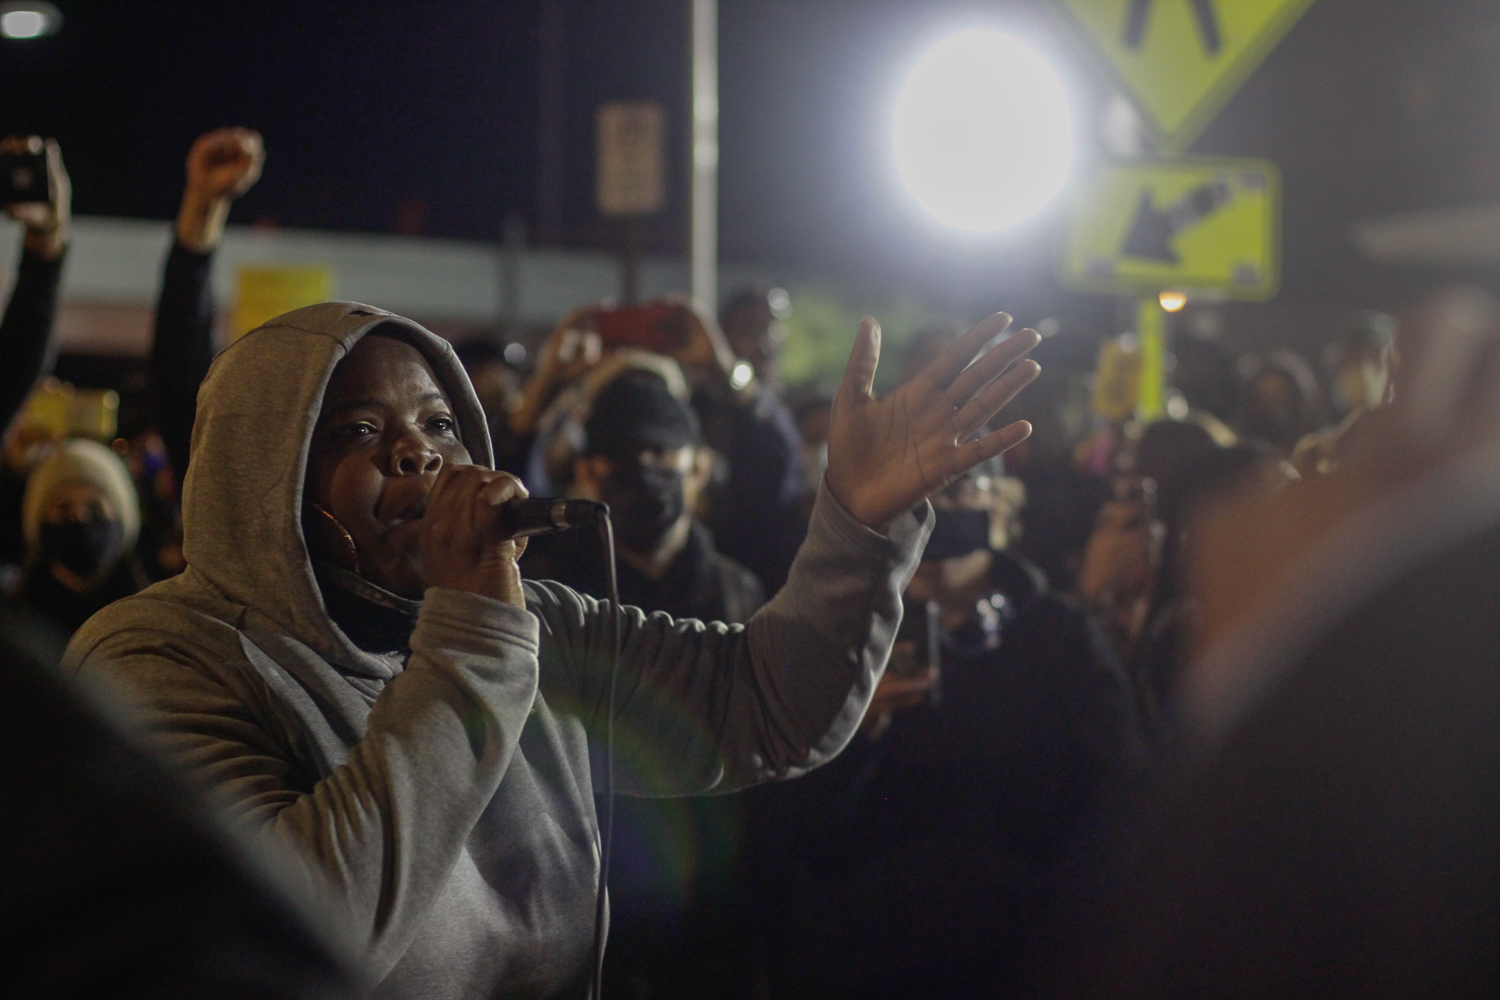 Danielle Ponder, a Rochester-born musician and former criminal defense lawyer, spoke to protestors on Friday, September 11, 2020.